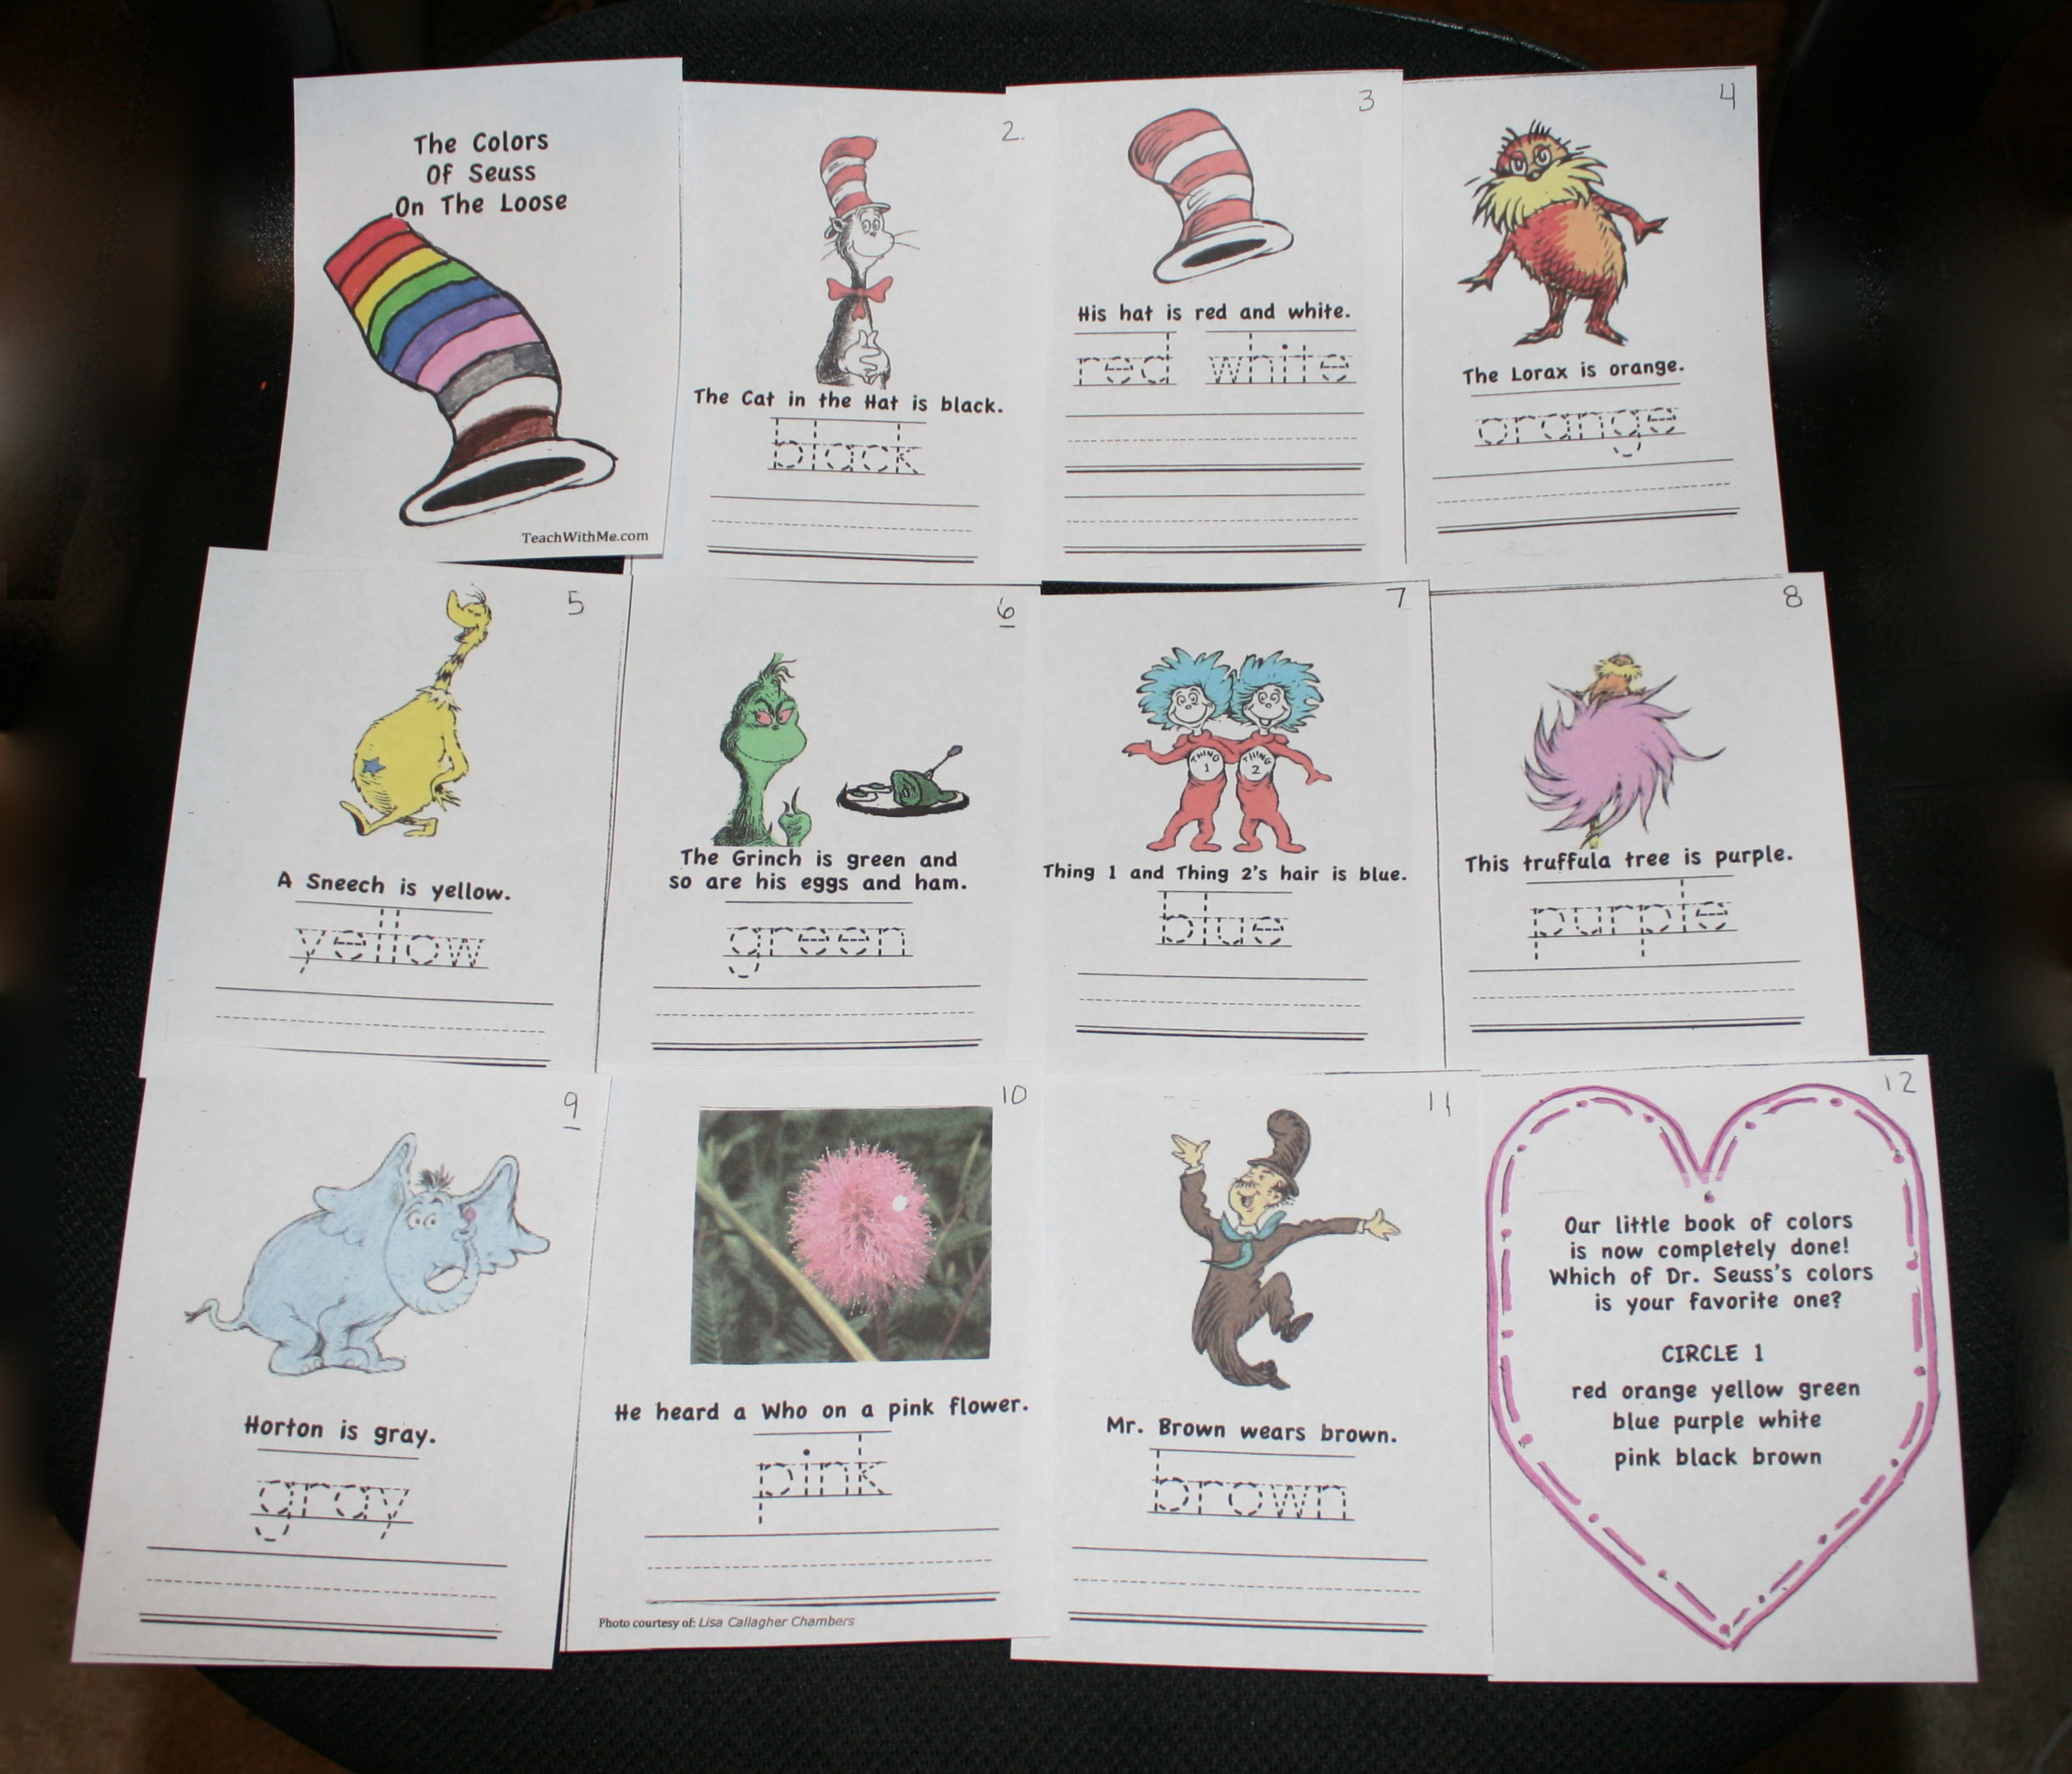 cat in the hat day activities, ideas for cat in the hat day, cat in the hat day activities for kindergarten, cat in the hat day activities for first, activities for cat in the hat day, cat in the hat day, activities for dr. seuss day, dr. seuss day activities, dr. seuss day activities for kindergarten, activities for dr. seuss day for first grade, dr. seuss day lessons, lessons for dr. seuss day for kinder, lessons for dr. seuss day for first grade, dr. seuss day writing prompts, dr. seuss day crafts, dr. seuss day hat, dr. seuss hat, dr. seuss day crafts, dr. seuss day art projects, dr. seuss day costumes, costumes for dr. seuss day, costumes for cat in the hat day, dr. seuss day writing activities,